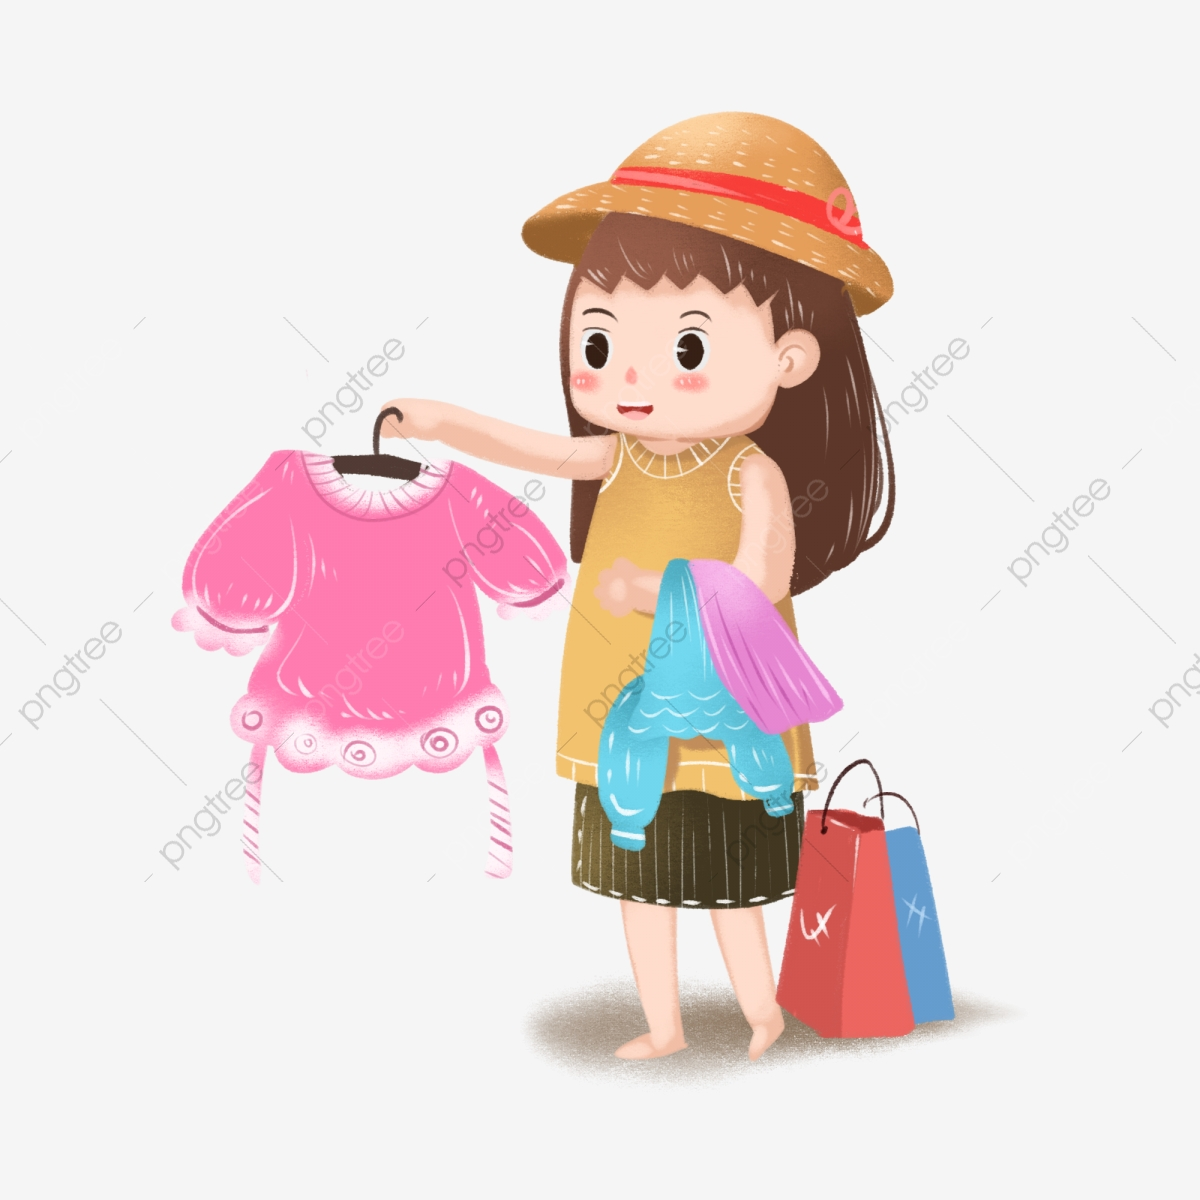 Crazy Shopping To Choose Clothes Can Be Commercial Elements 1111